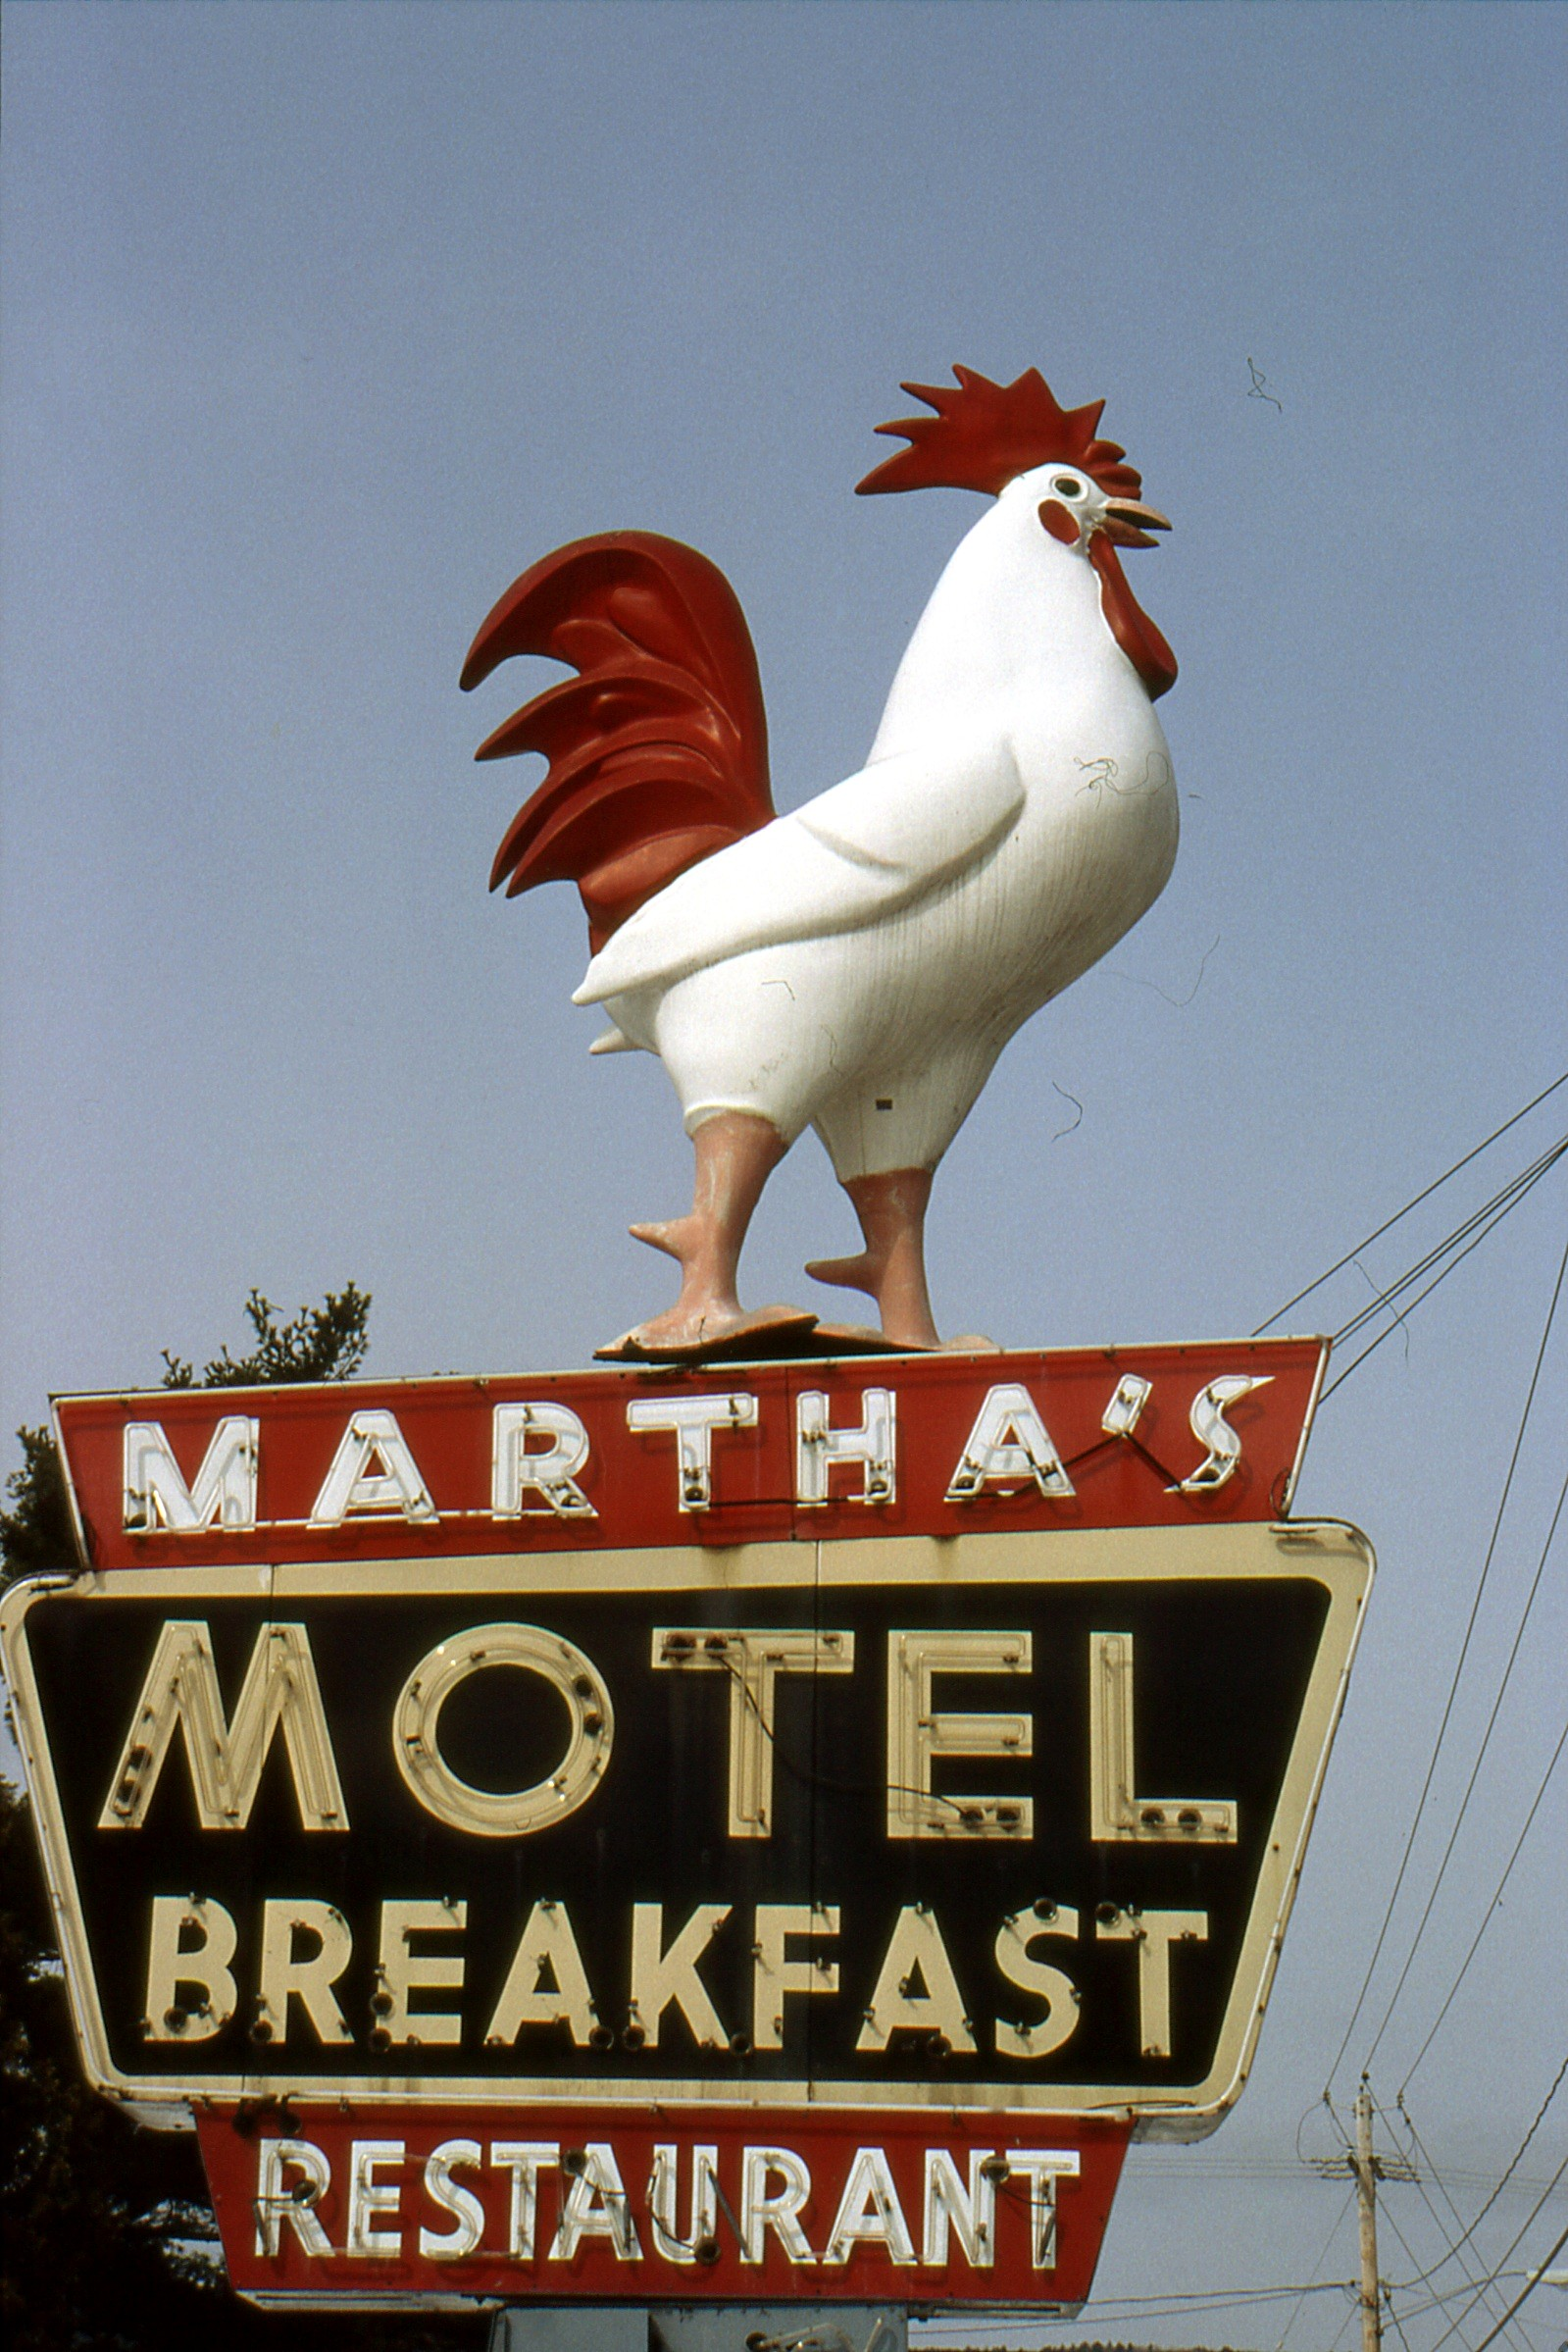 Martha's Motel and Restaurant - Queensbury, New York U.S.A. - March 6, 2008